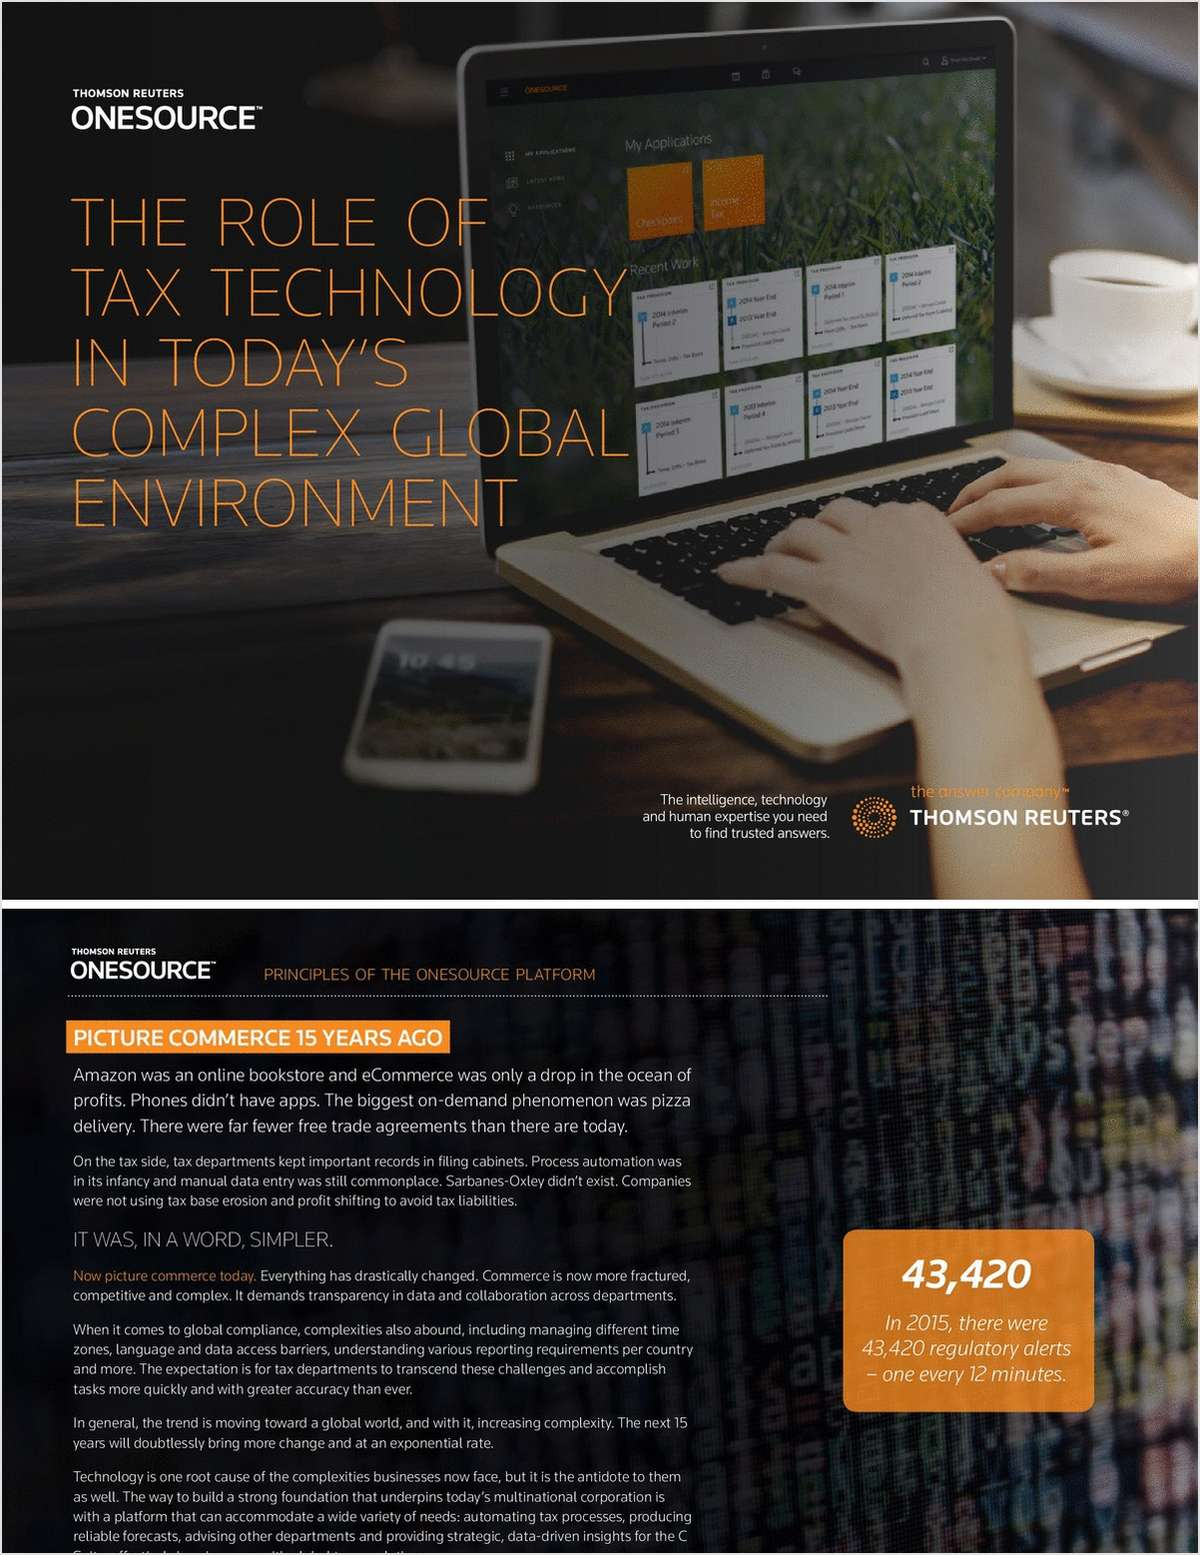 The Role of Tax Technology in Today's Complex Global Environment